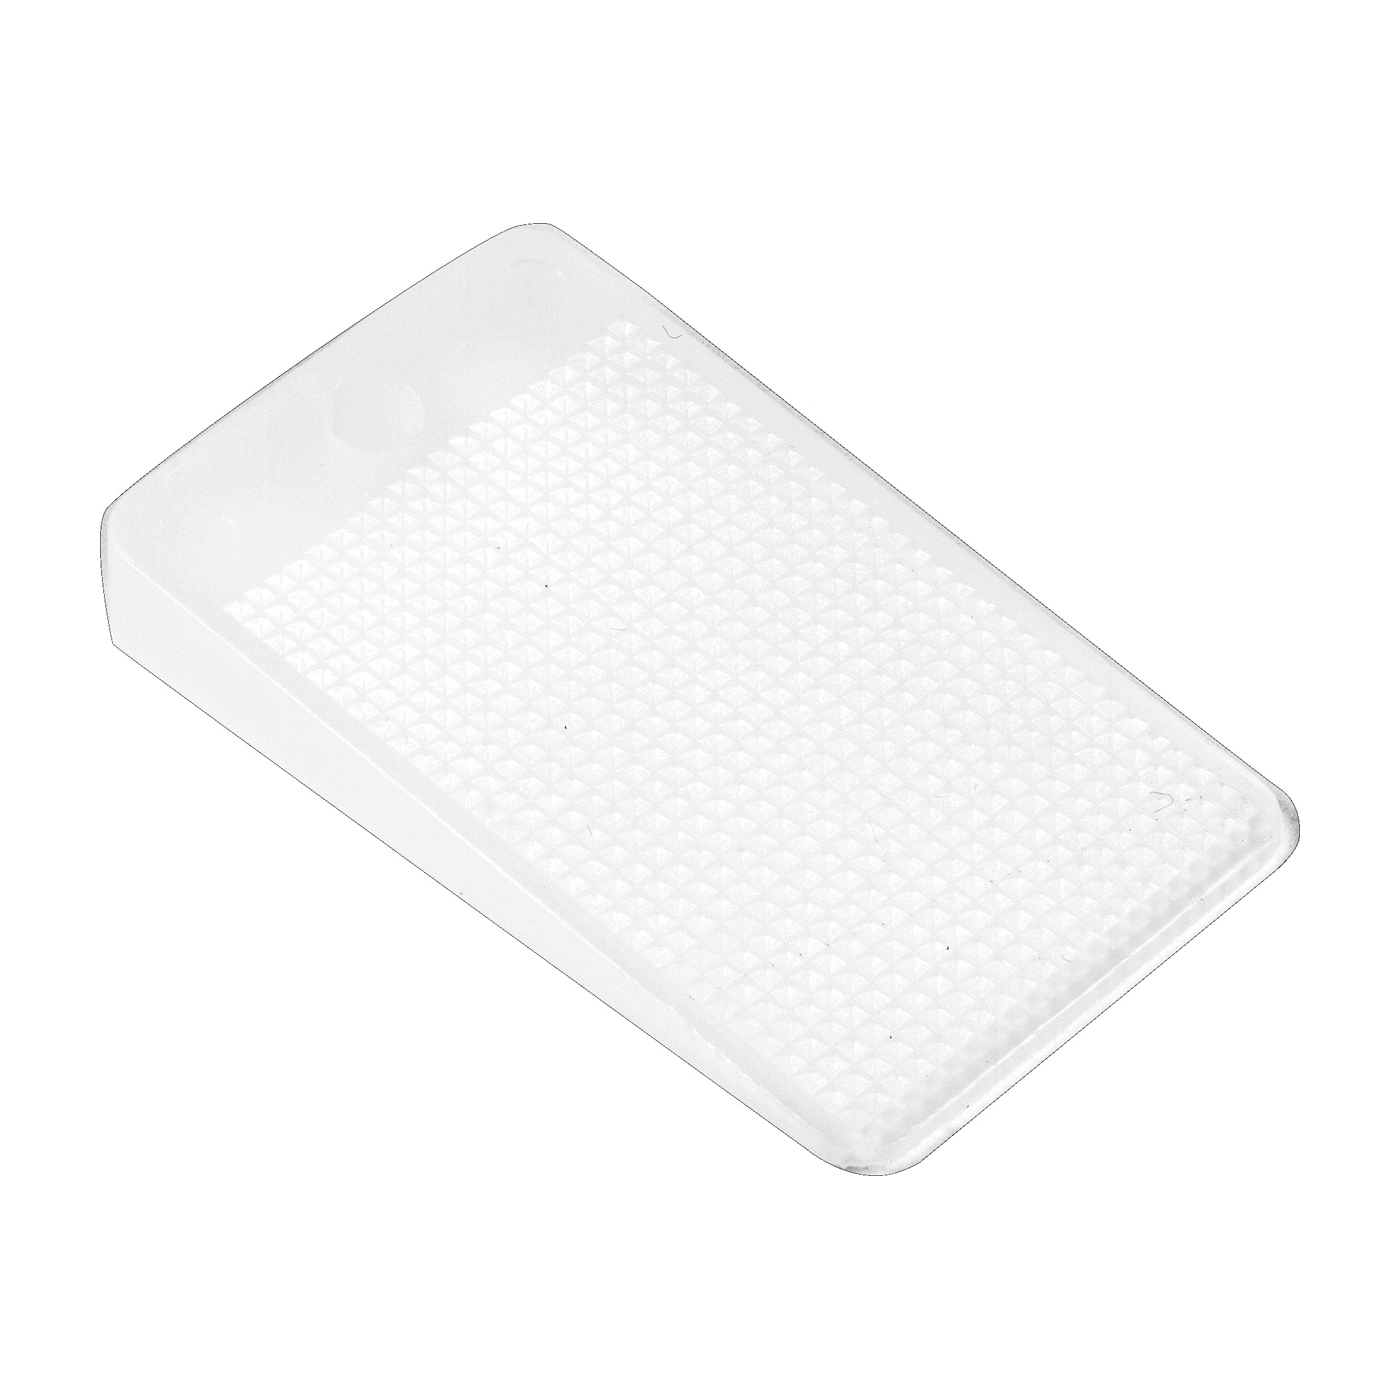 Picture of Shepherd Hardware Wedge It 9435 Shim, 2 in L, 1-1/8 in W, Plastic, White